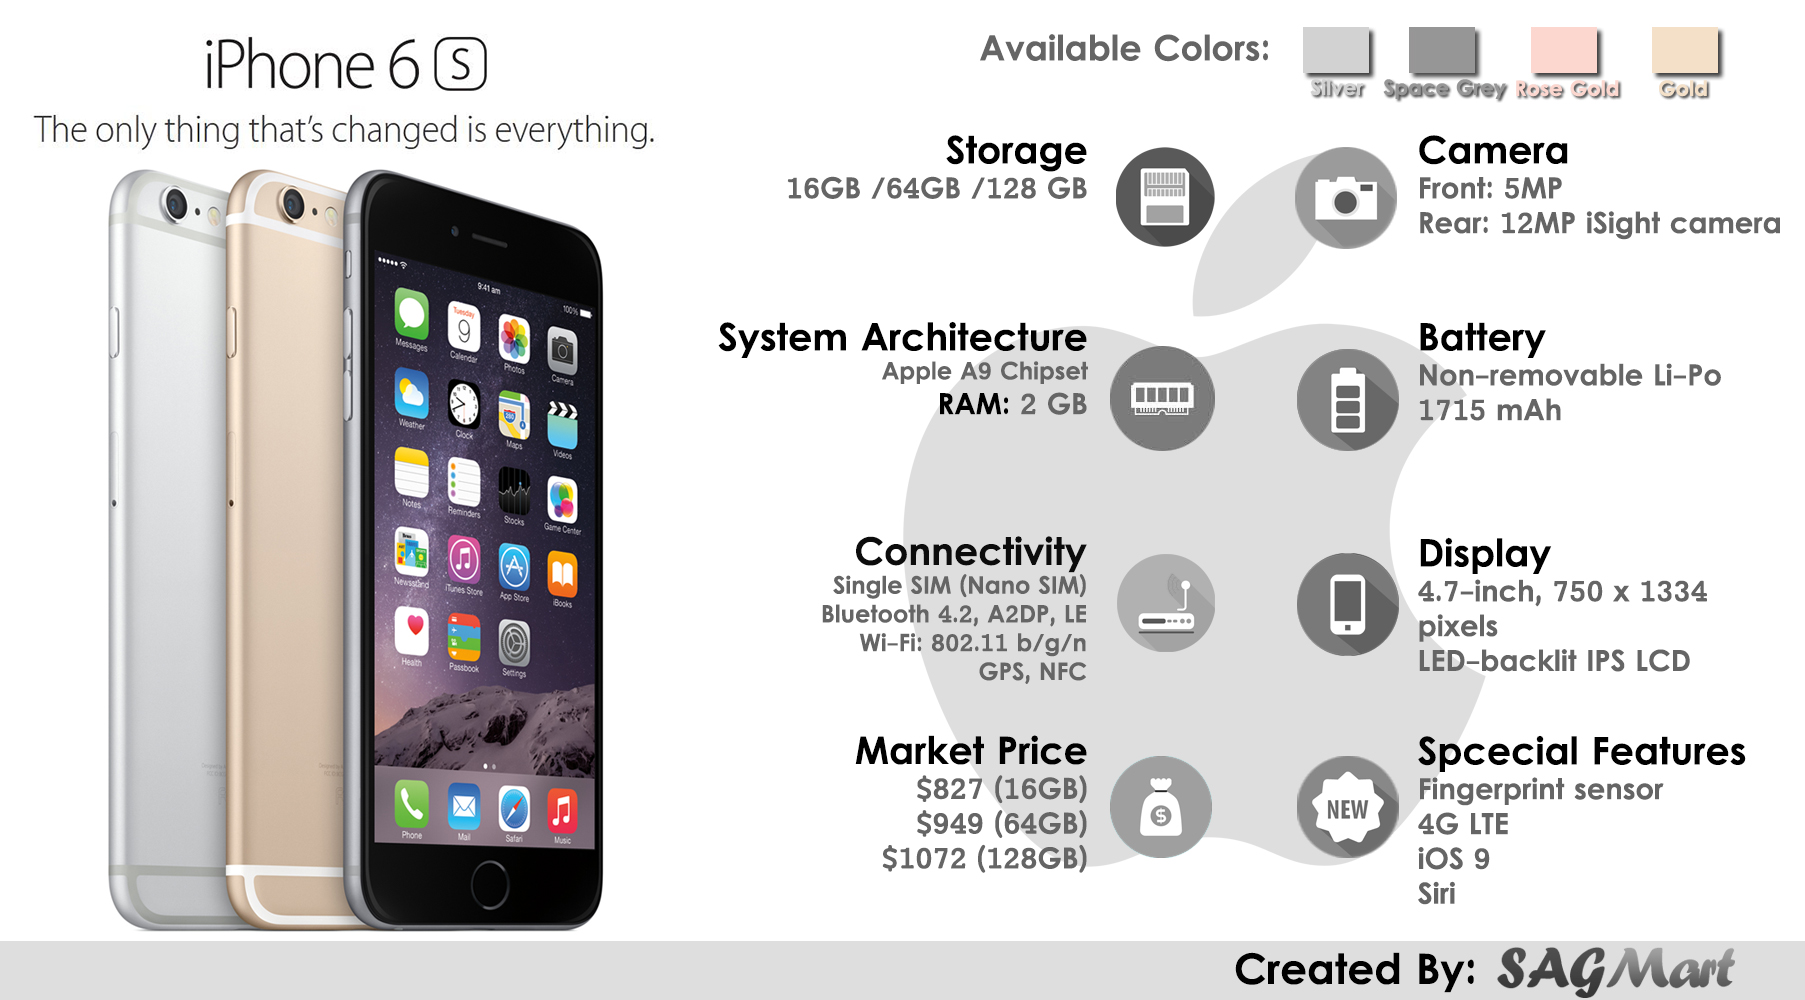 Apple iPhone 6s Infographic